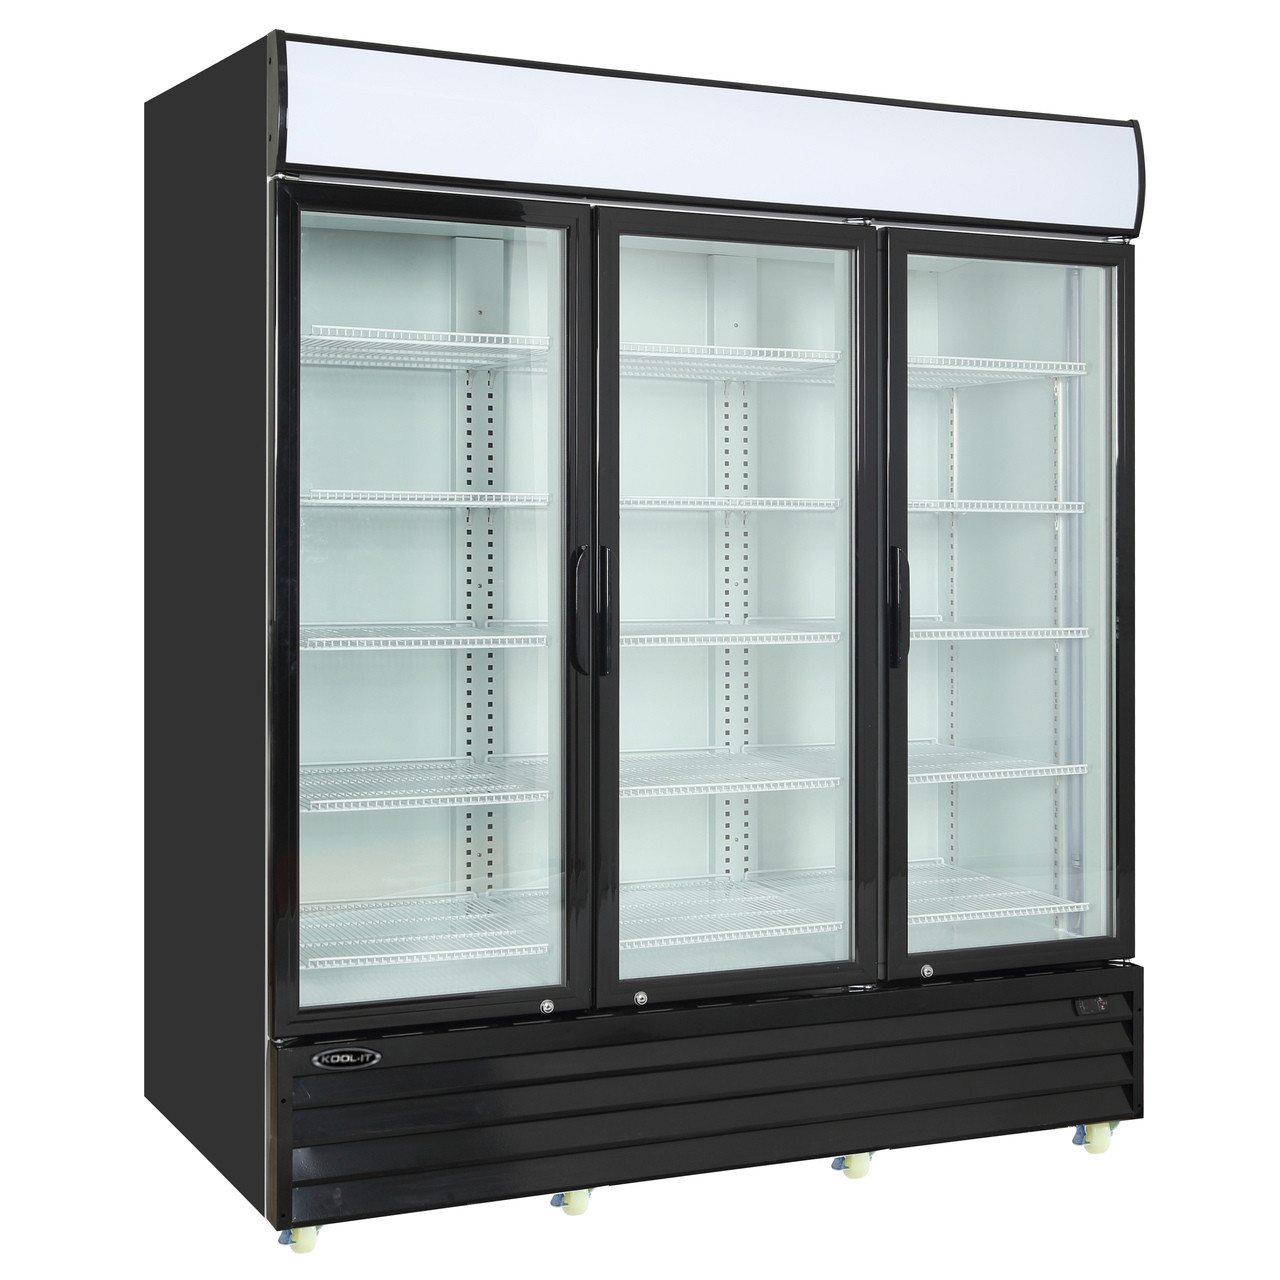 Products - REFRIGERATION EQUIPMENT - Glass Door Merchandisers - Page ...